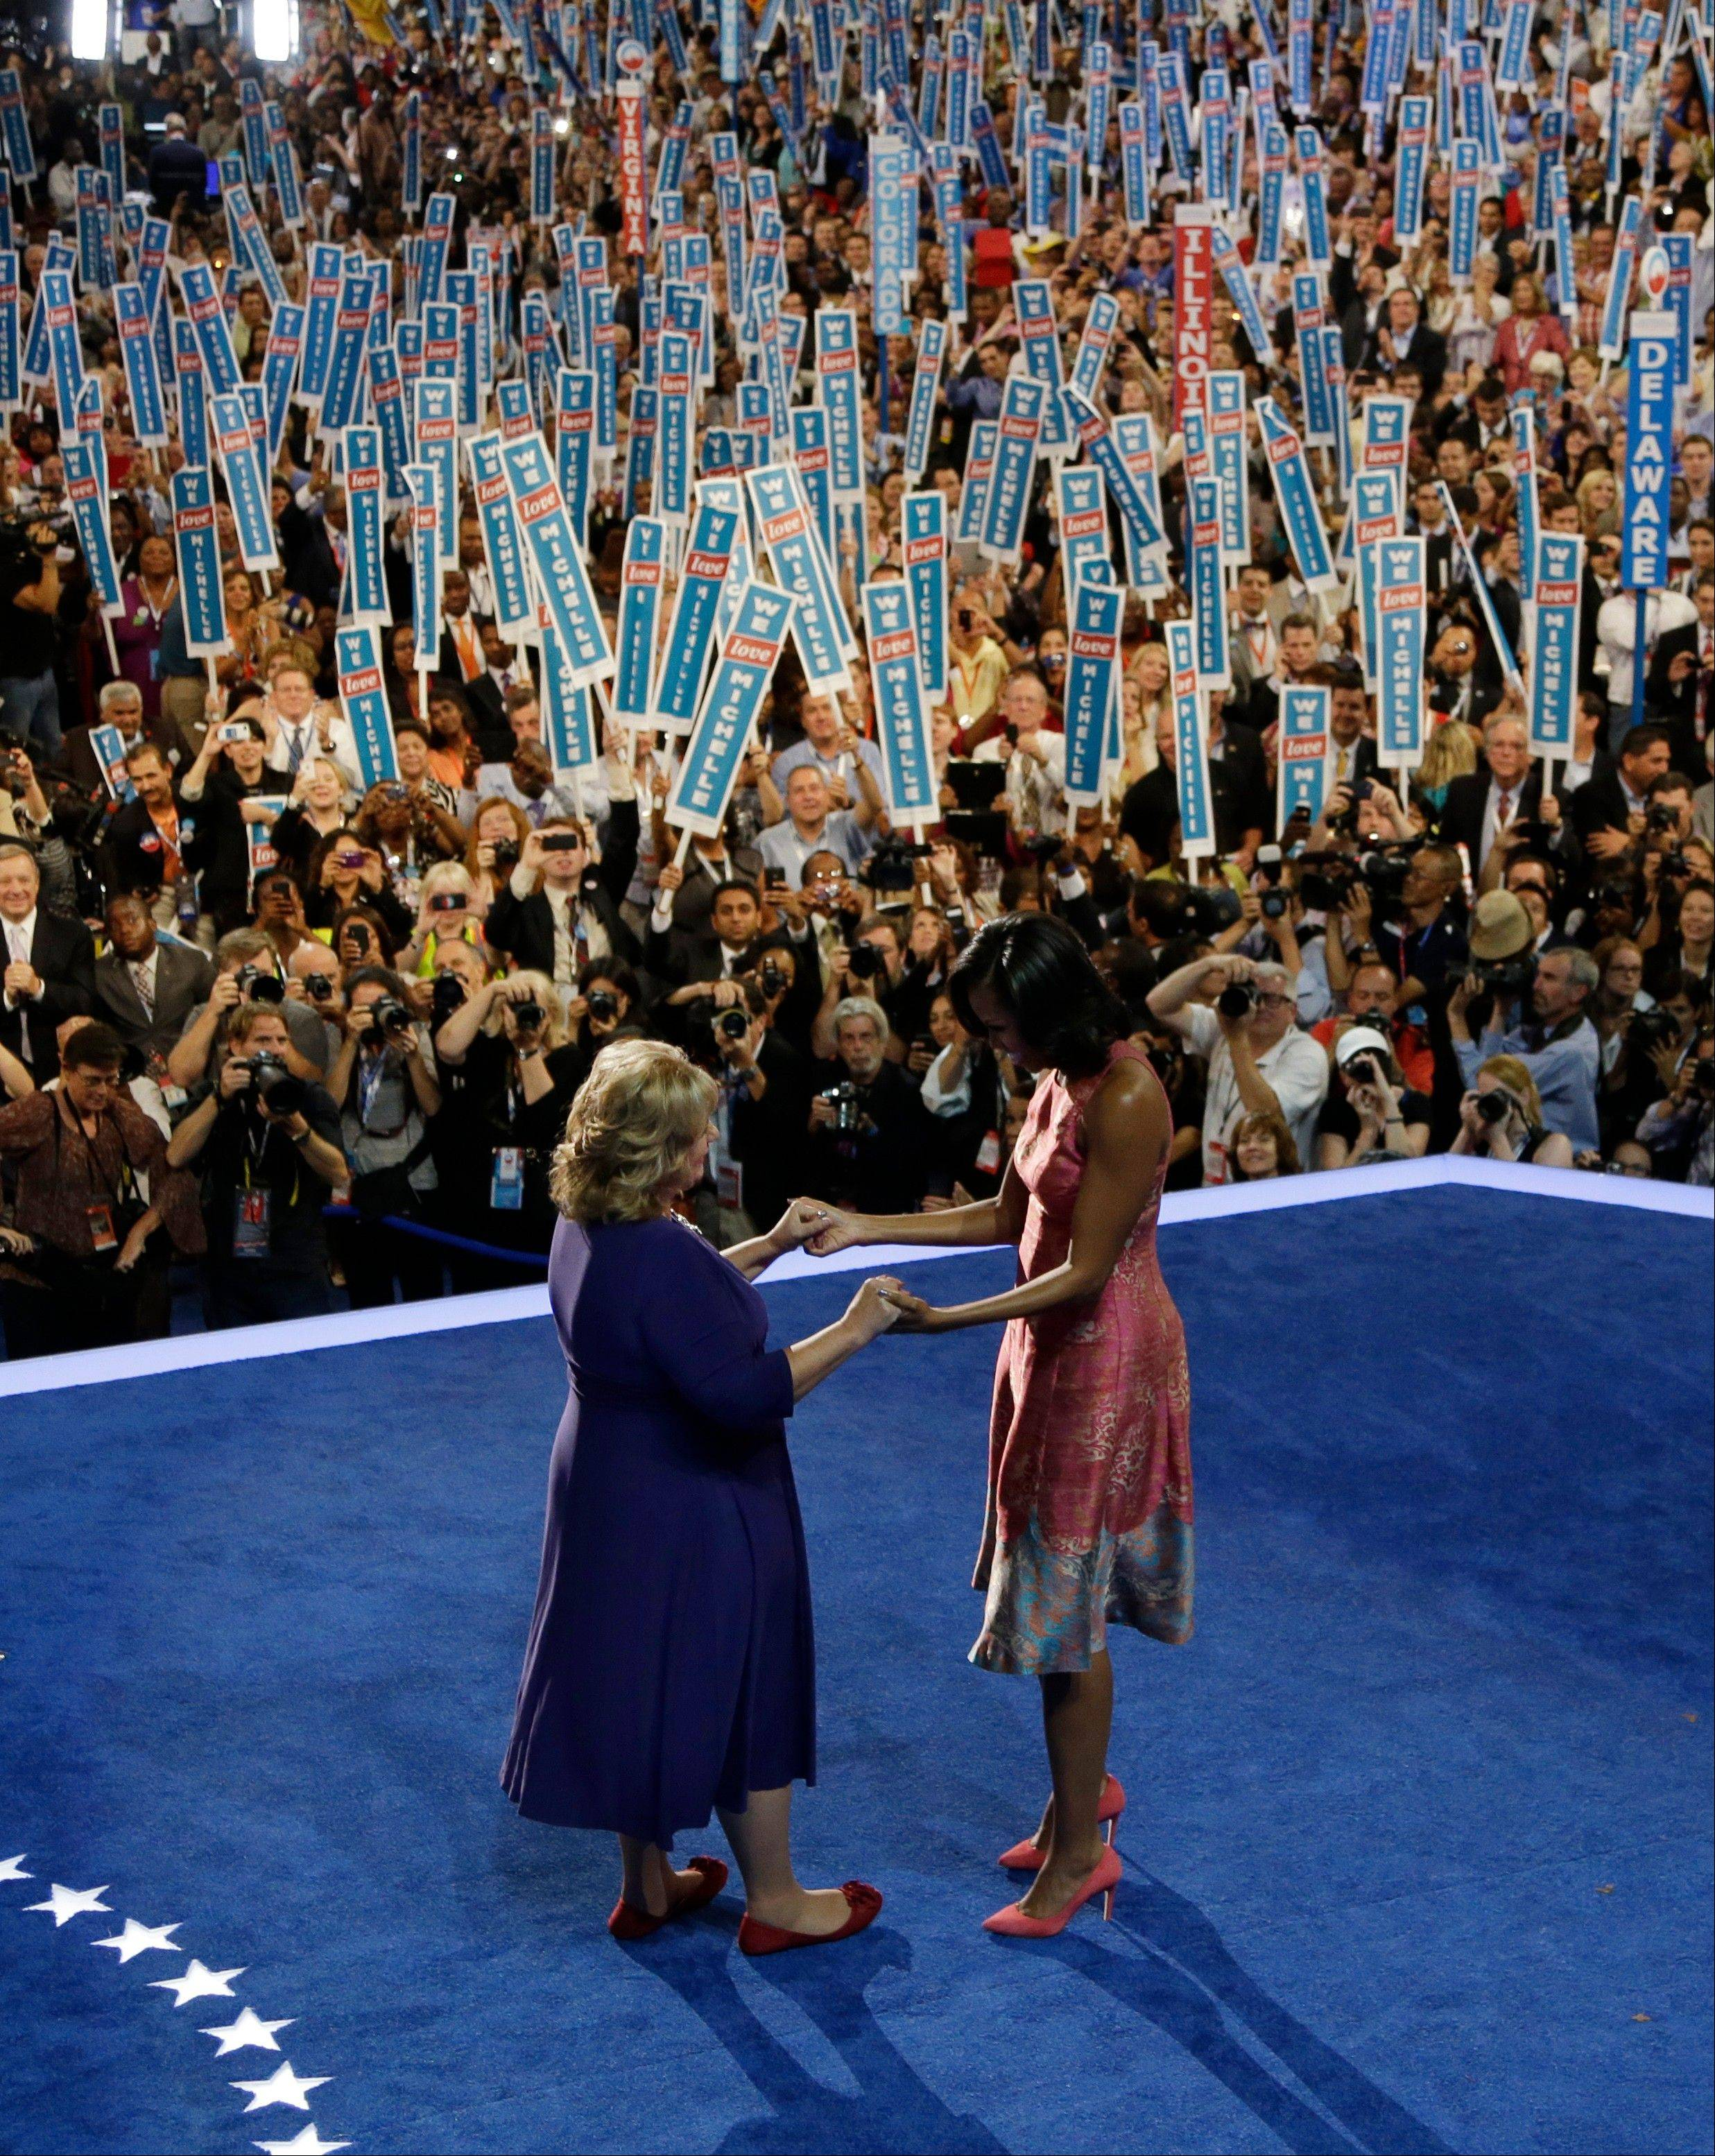 First Lady Michelle Obama, right, is greeted by Elaine Brye at the Democratic National Convention in Charlotte, N.C., on Tuesday, Sept. 4, 2012.